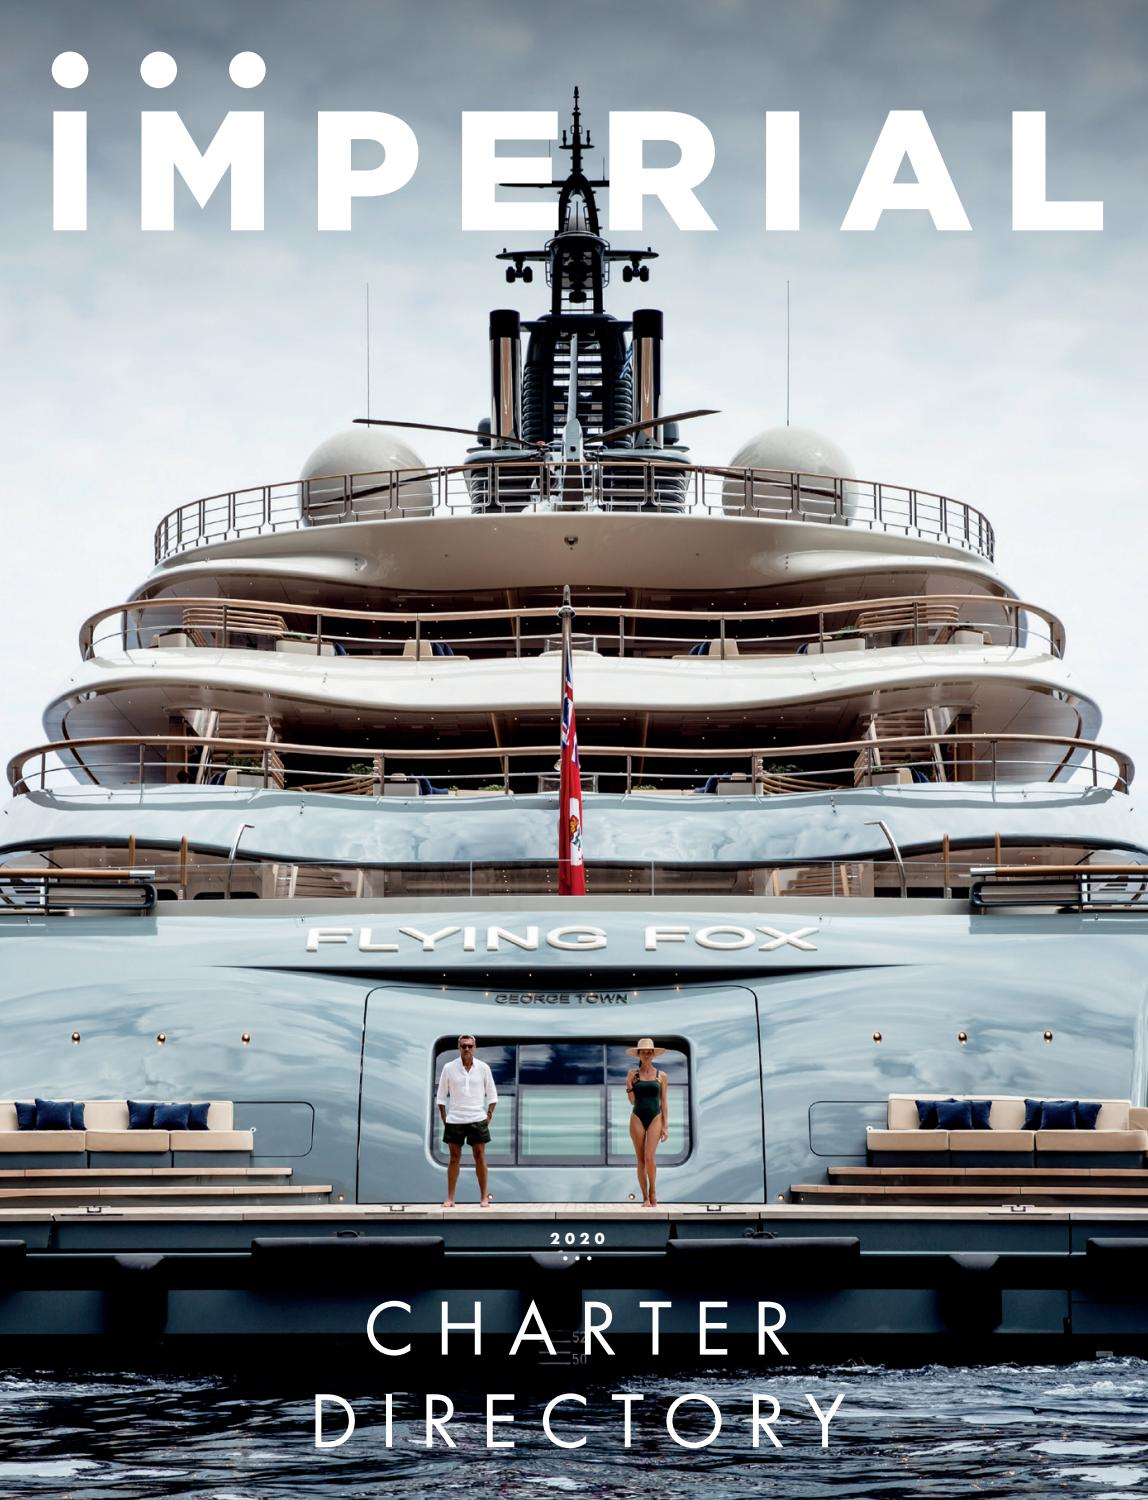 Imperial Charter Directory 2020 Edition By Imperial Yachts Issuu